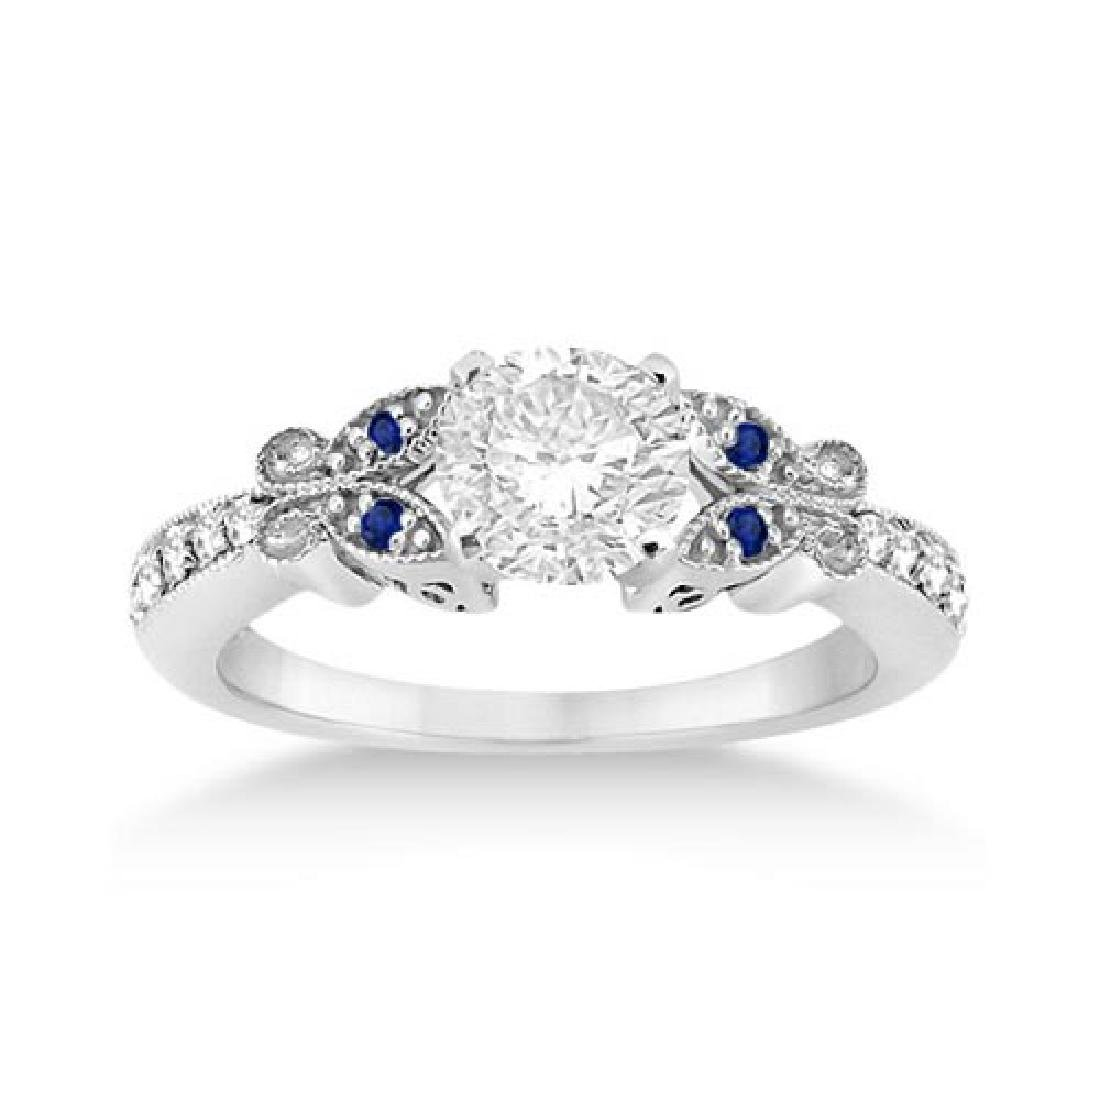 Butterfly Diamond and Sapphire Engagement Ring Settiong